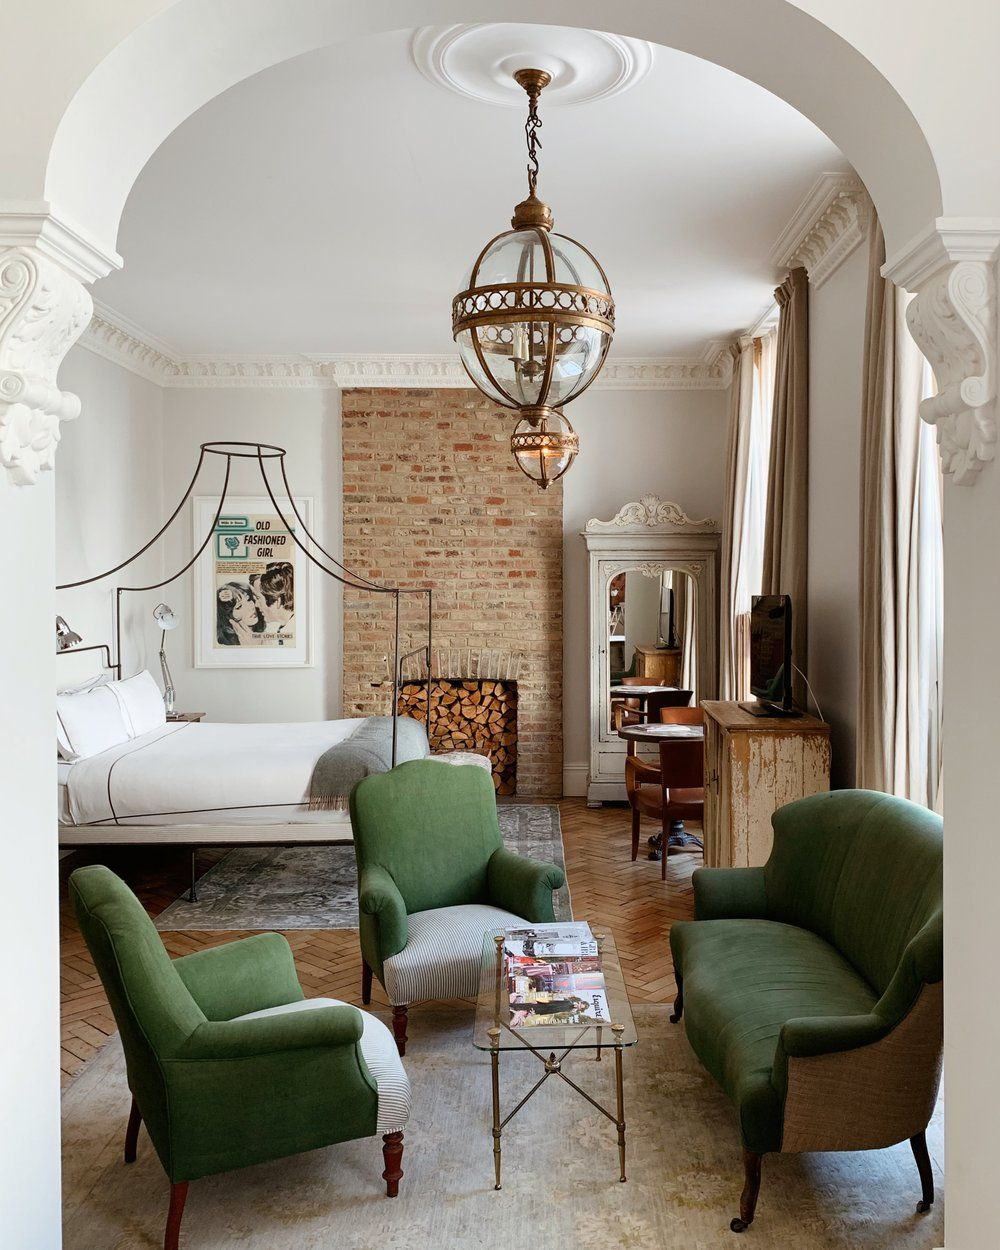 Where To Stay In London Ginagoesto Reiseziele In 2019